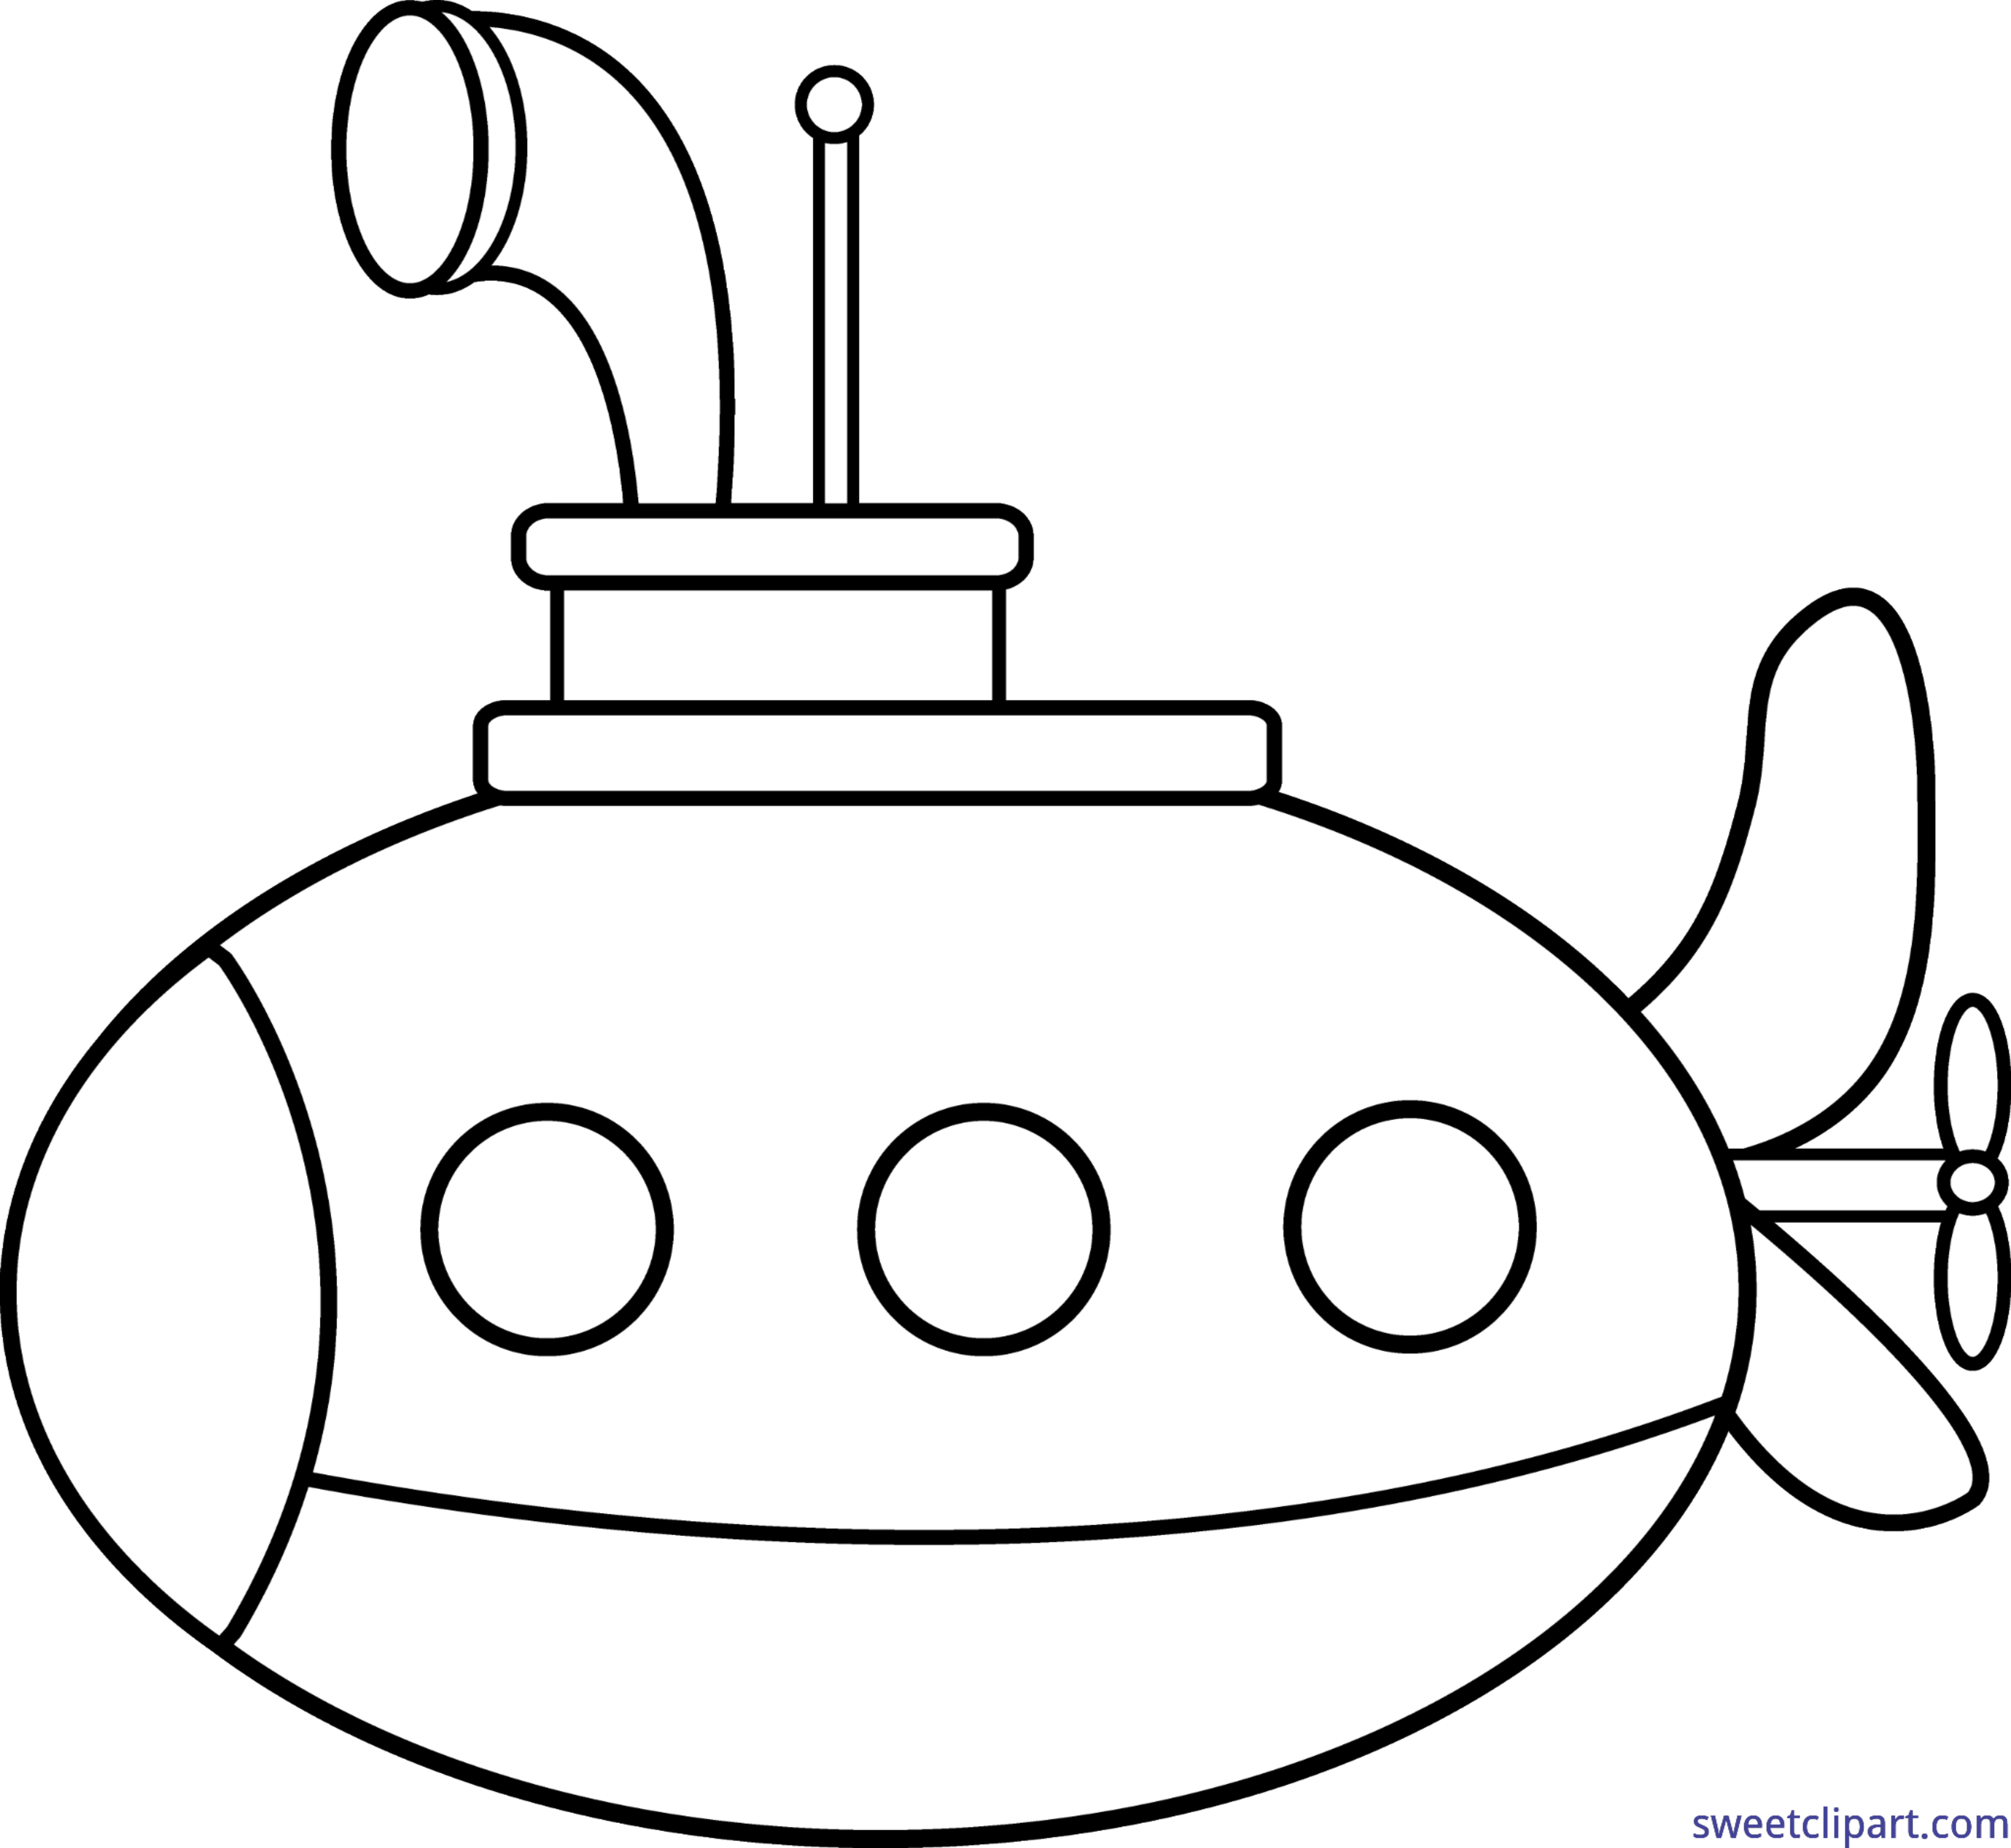 svg black and white library Lineart clip art sweet. Submarine clipart black and white